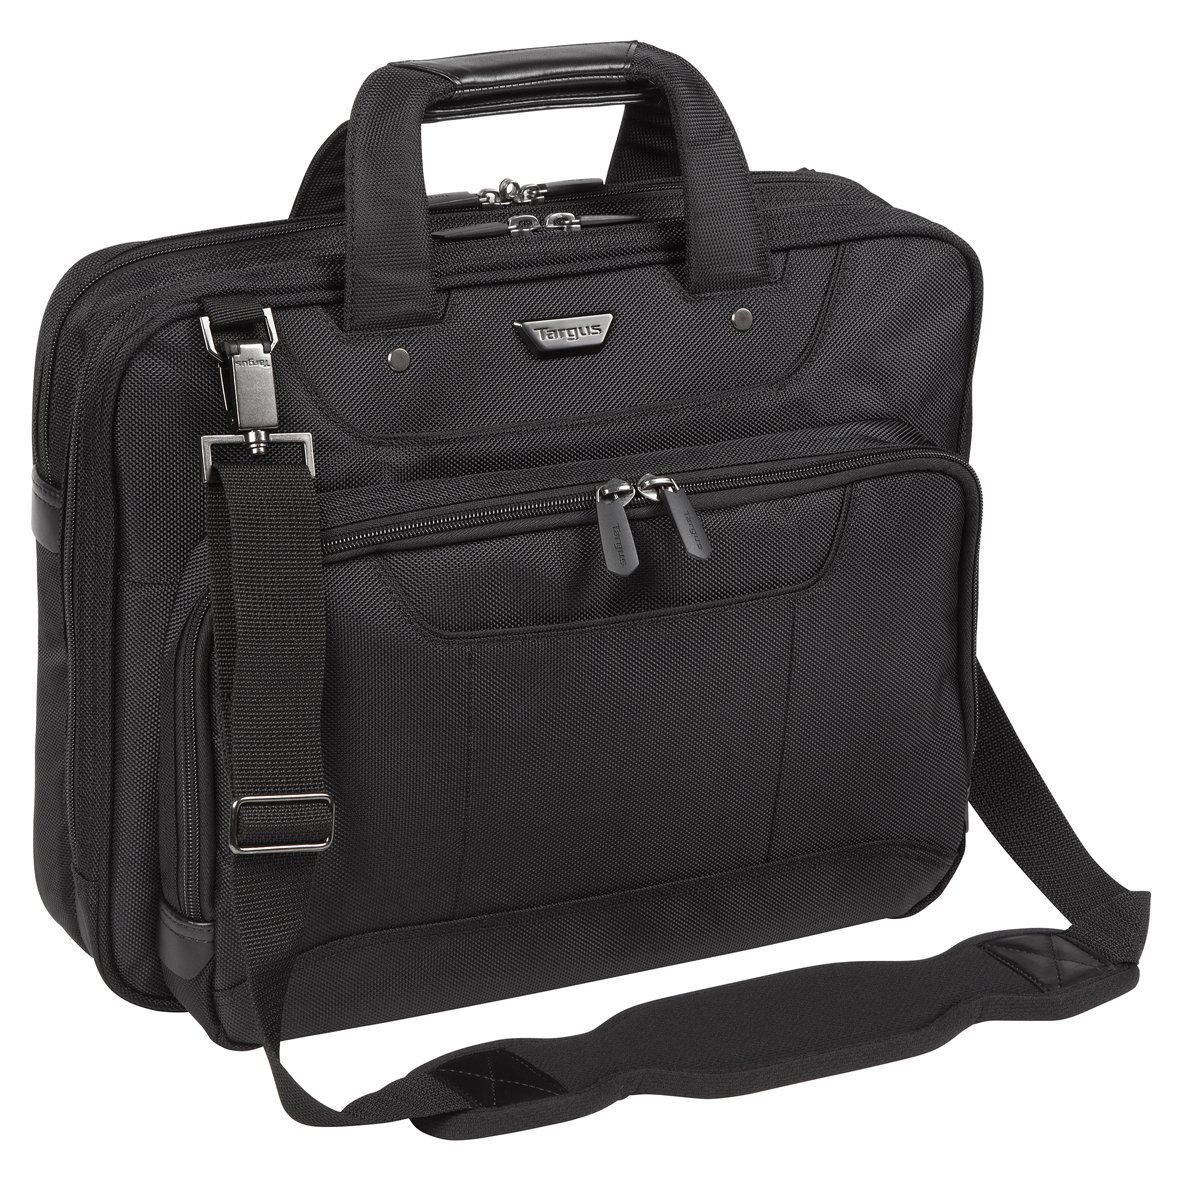 Targus Corporate Traveller Sacoche pour Ordinateur Portable 14' - Noir